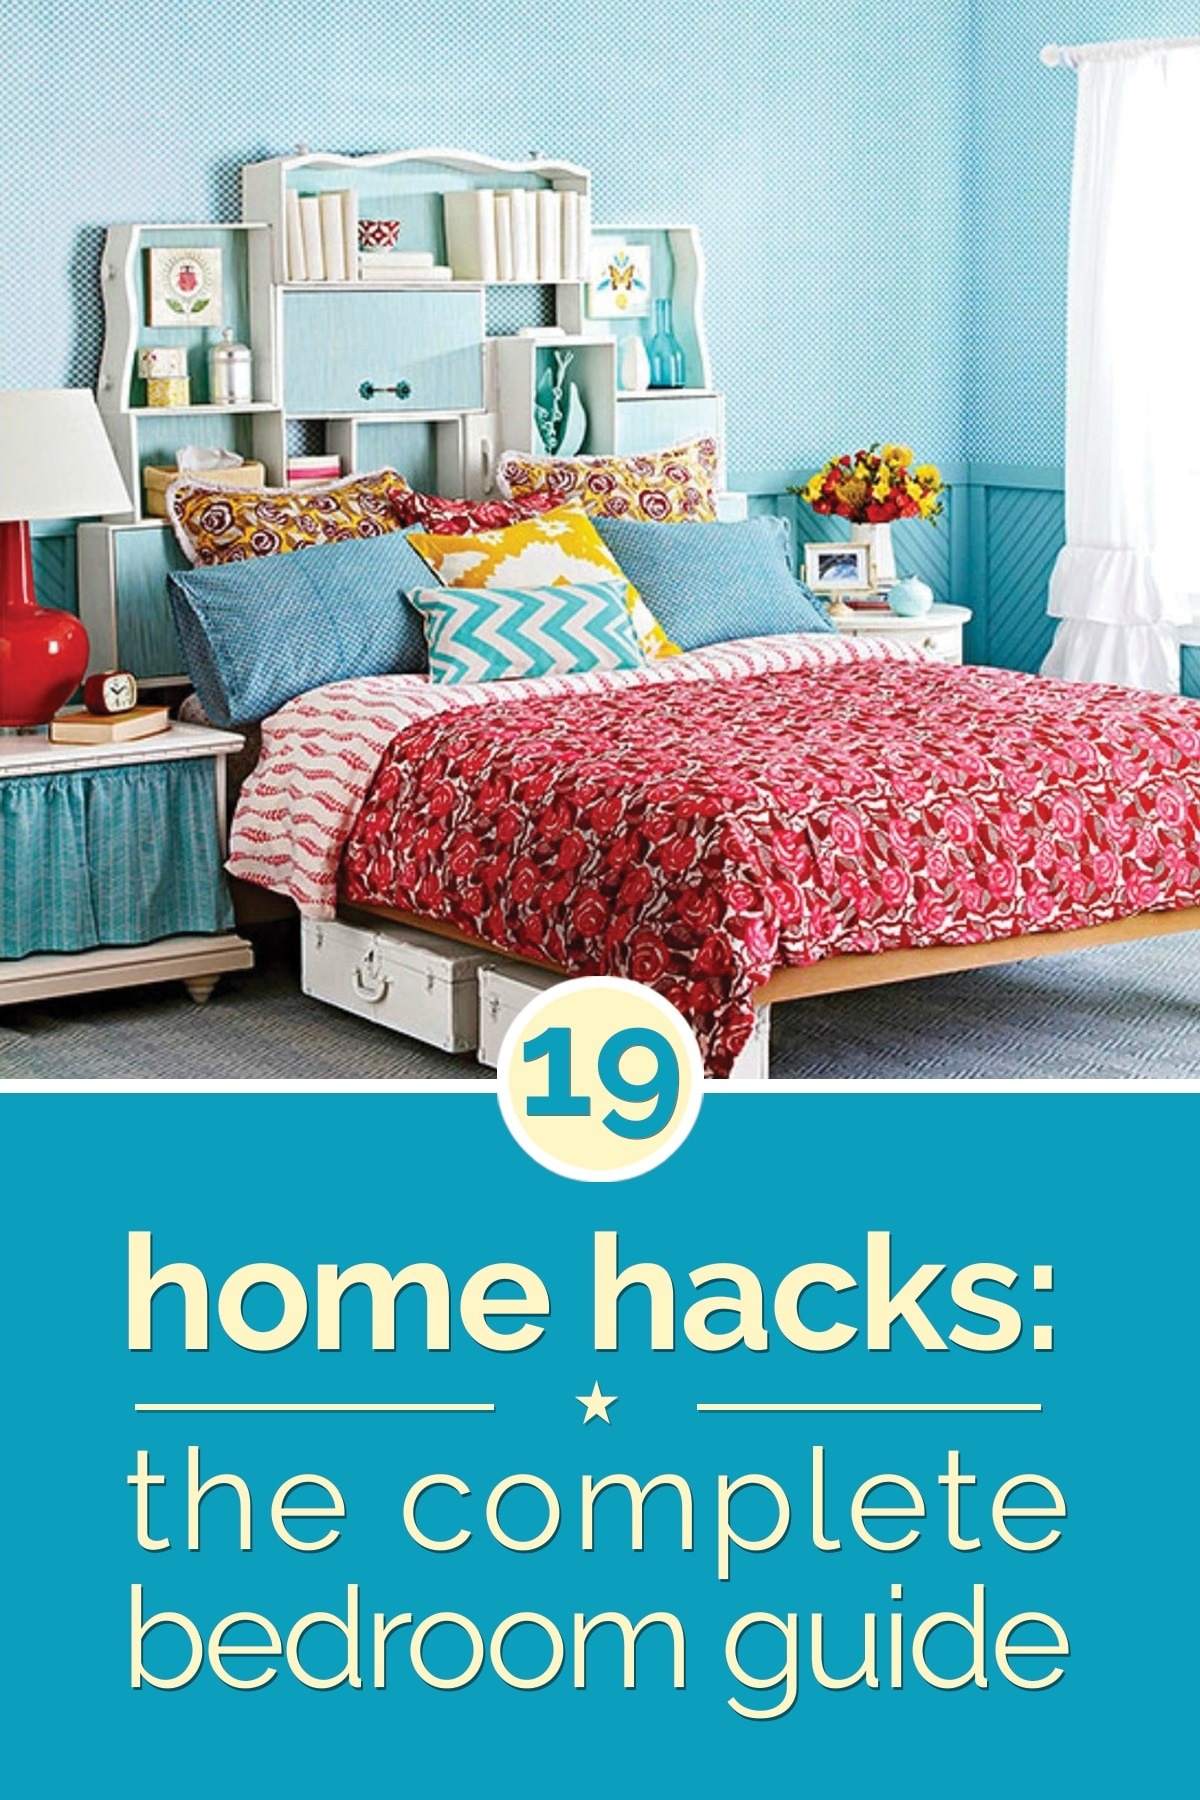 Home hacks 19 tips to organize your bedroom thegoodstuff for Diy for your bedroom